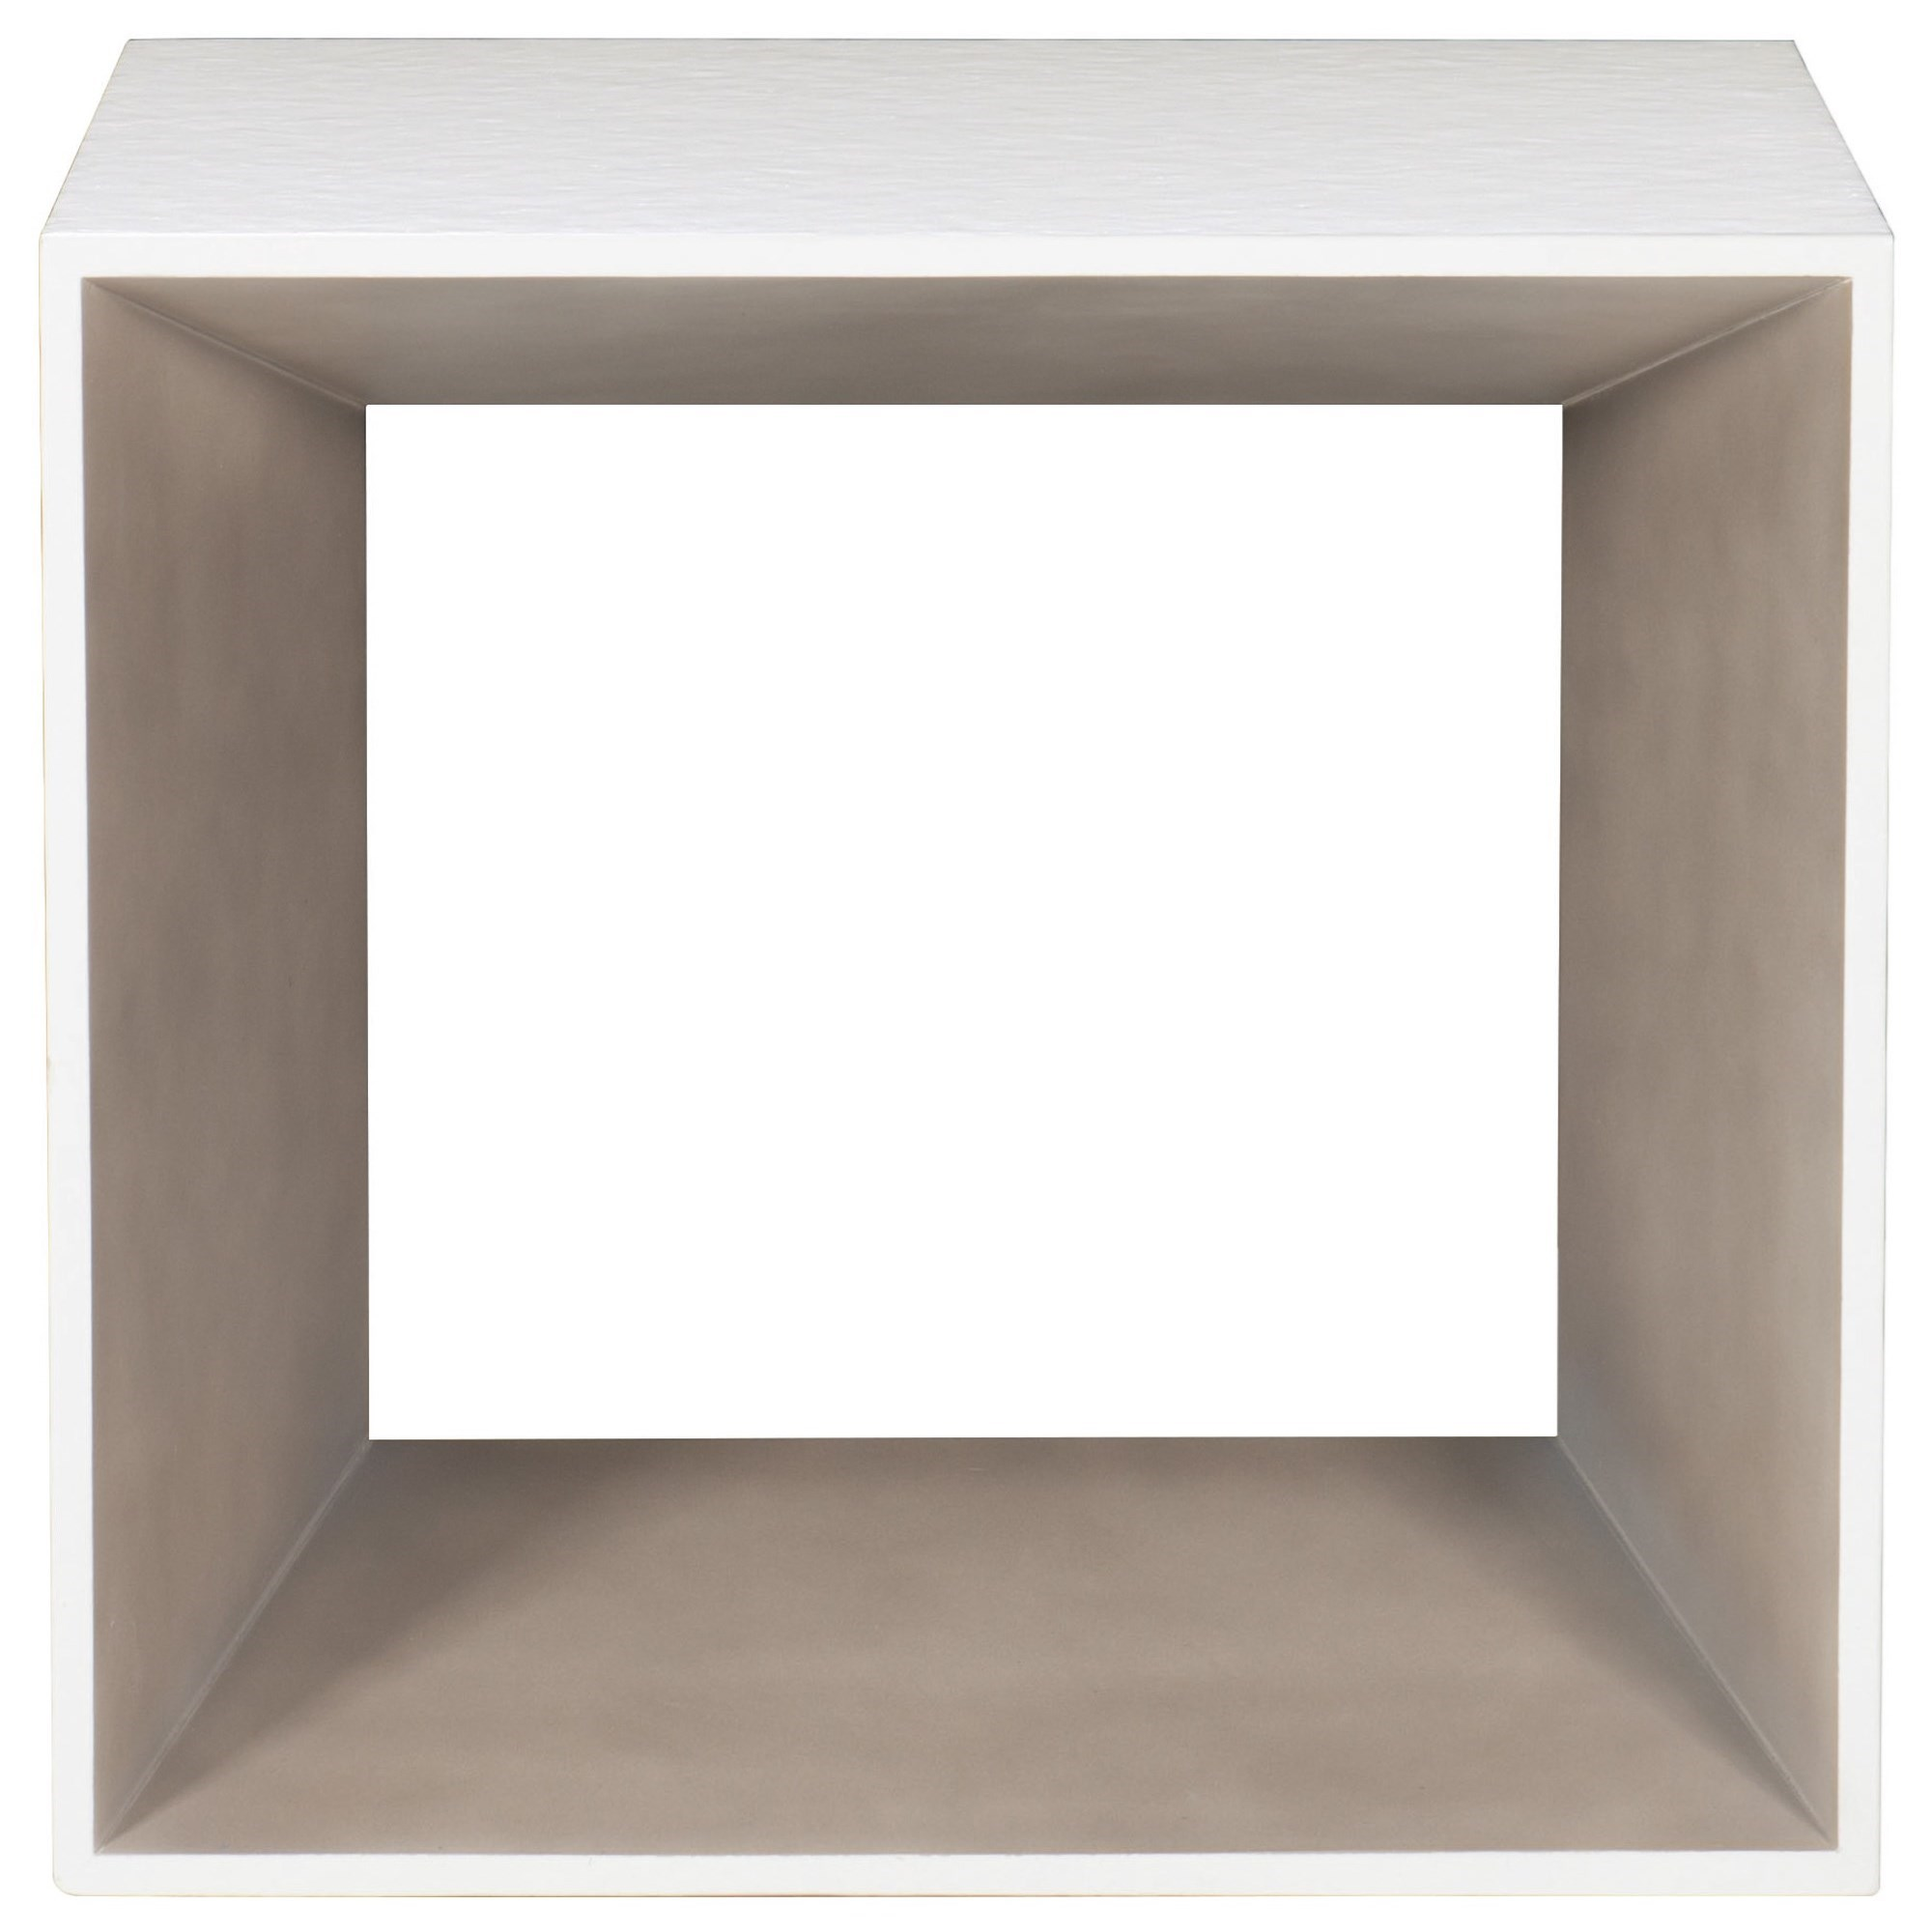 Bernhardt Kearny 456-122 Contemporary Two-Toned Square End Table ...